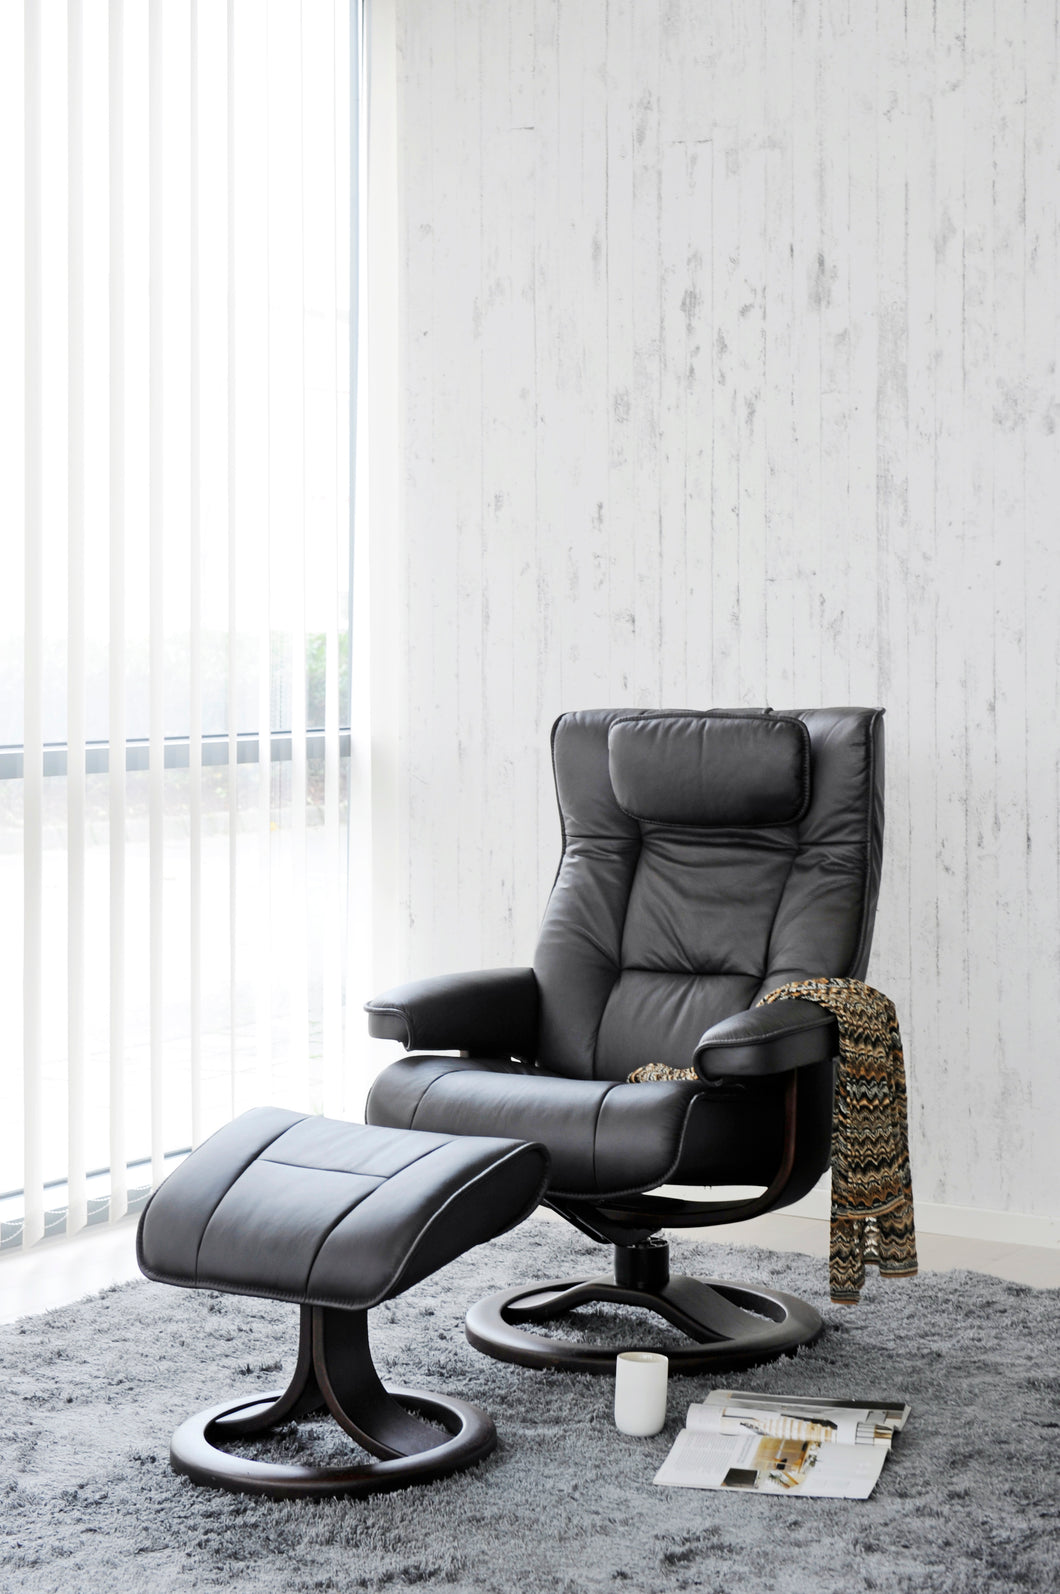 Fauteuil Mustang avec repose-pieds